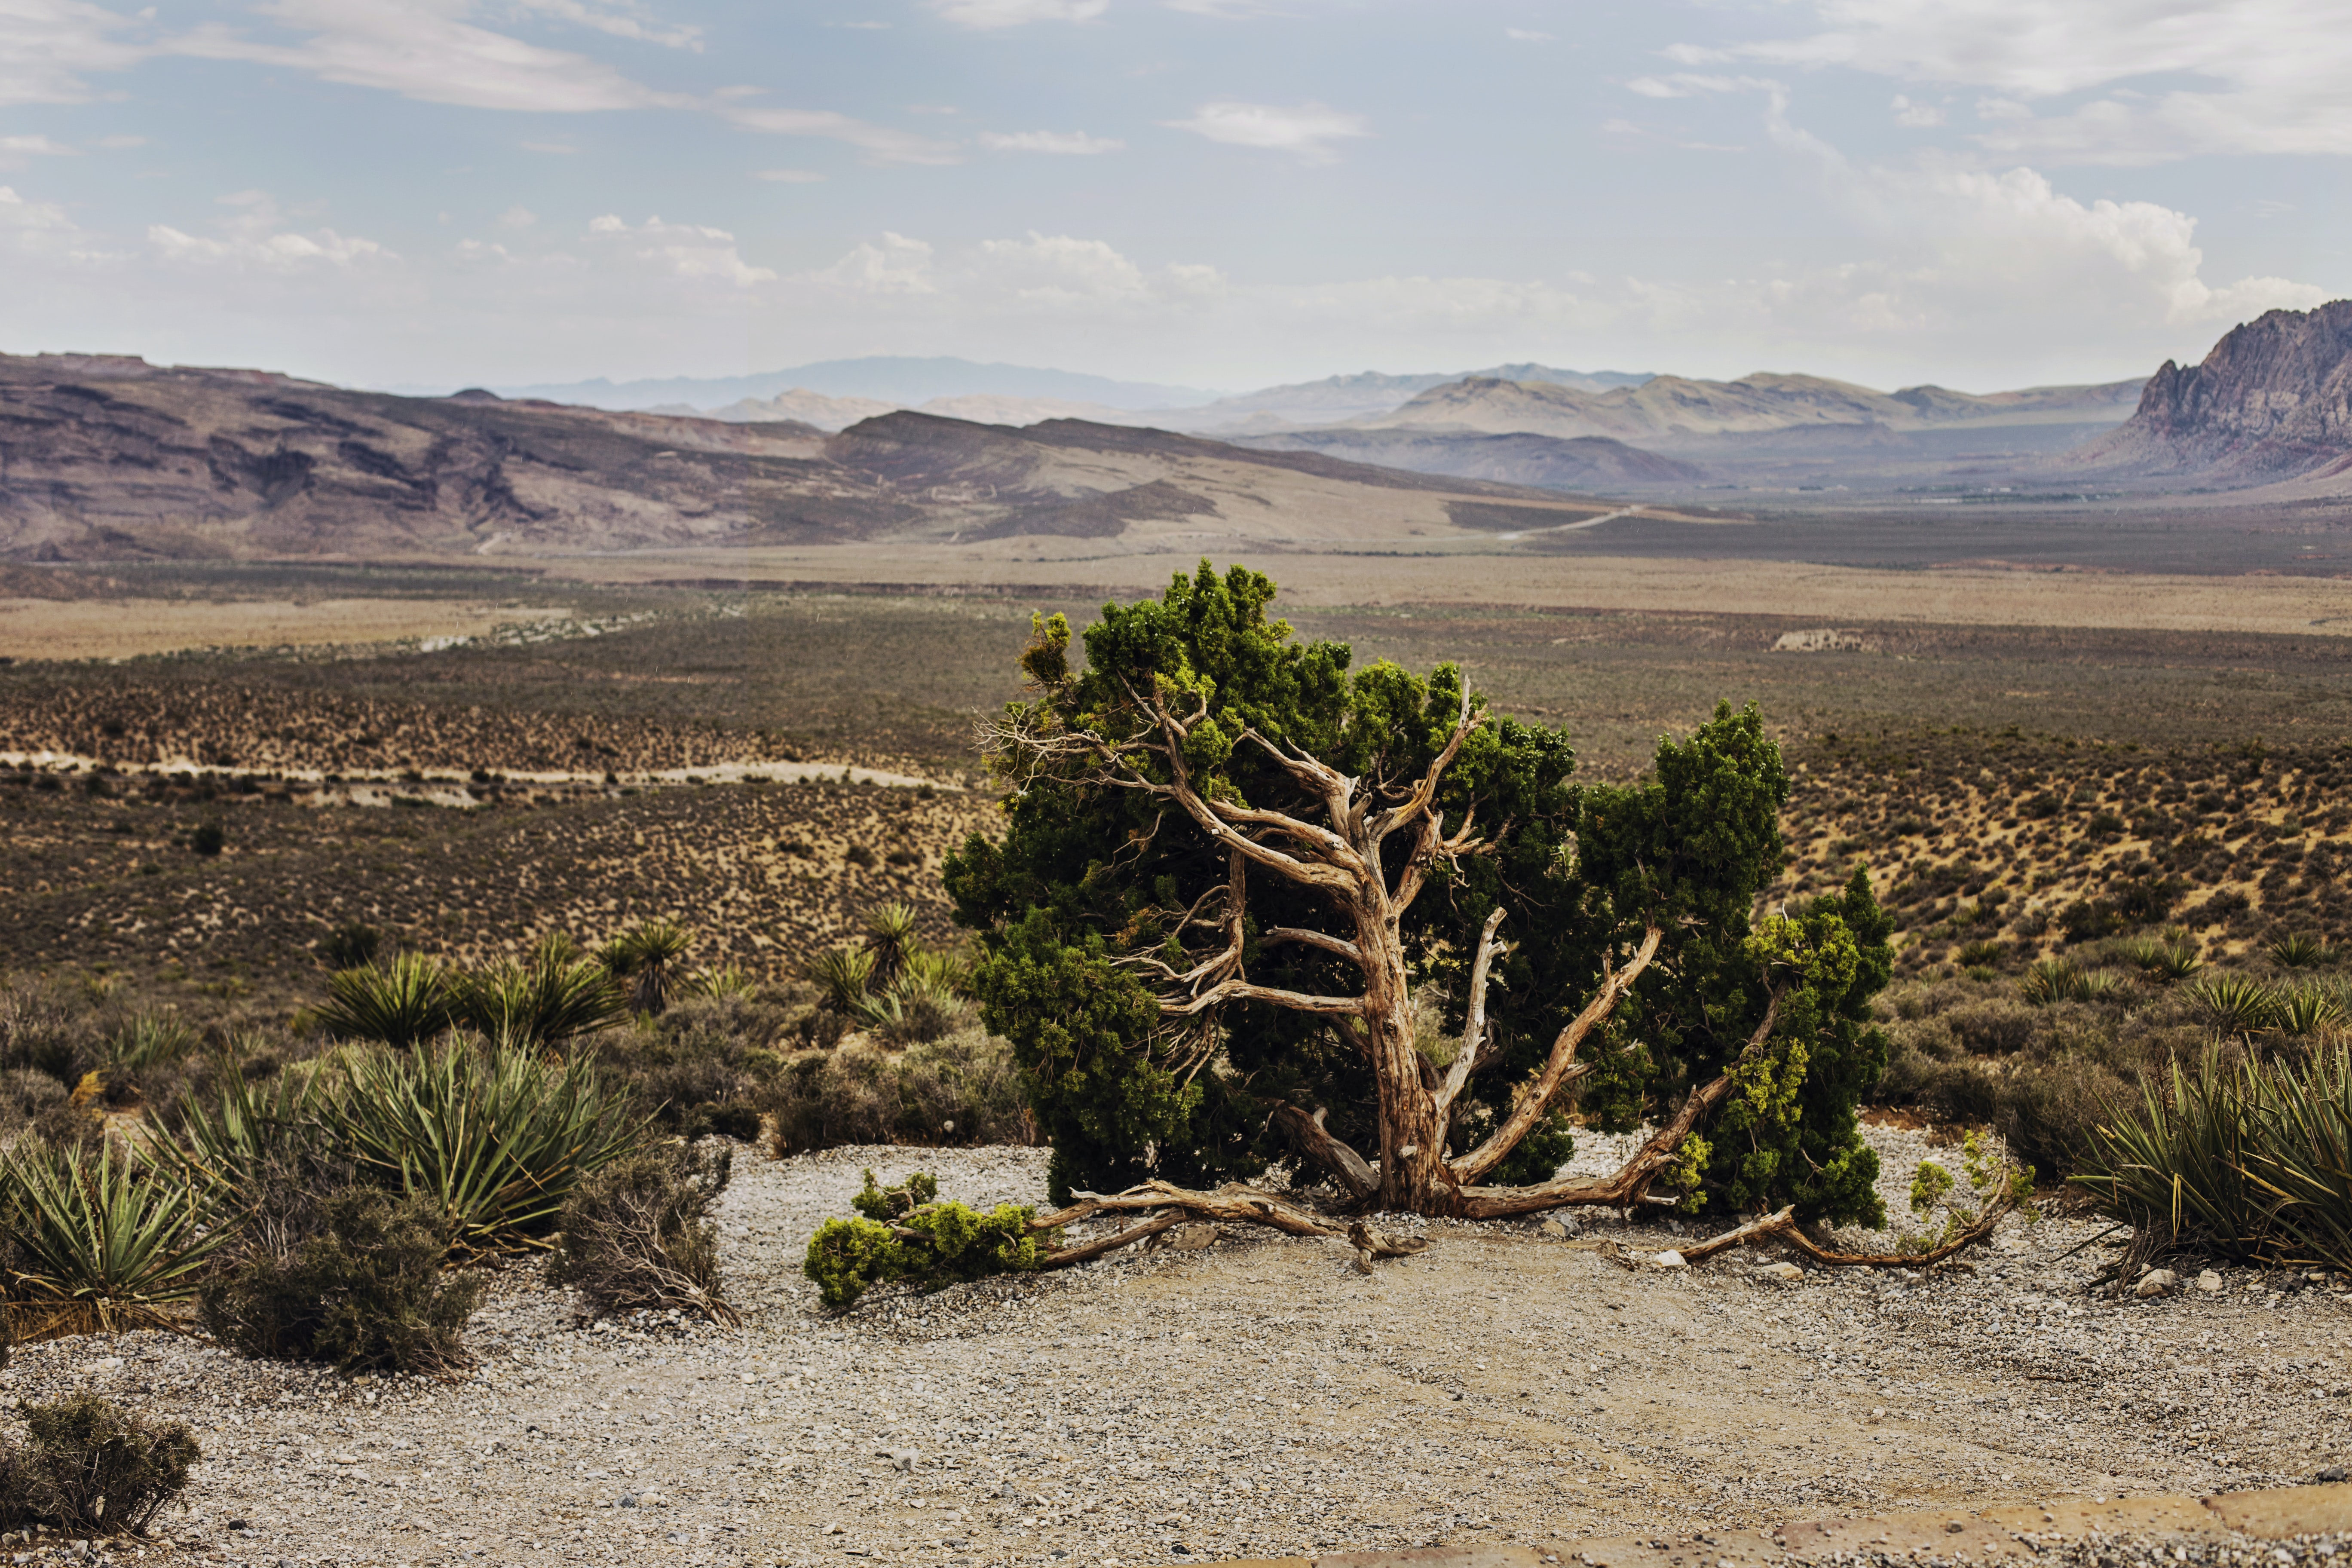 Desert tree and plants in the barren terrain of Red Rock